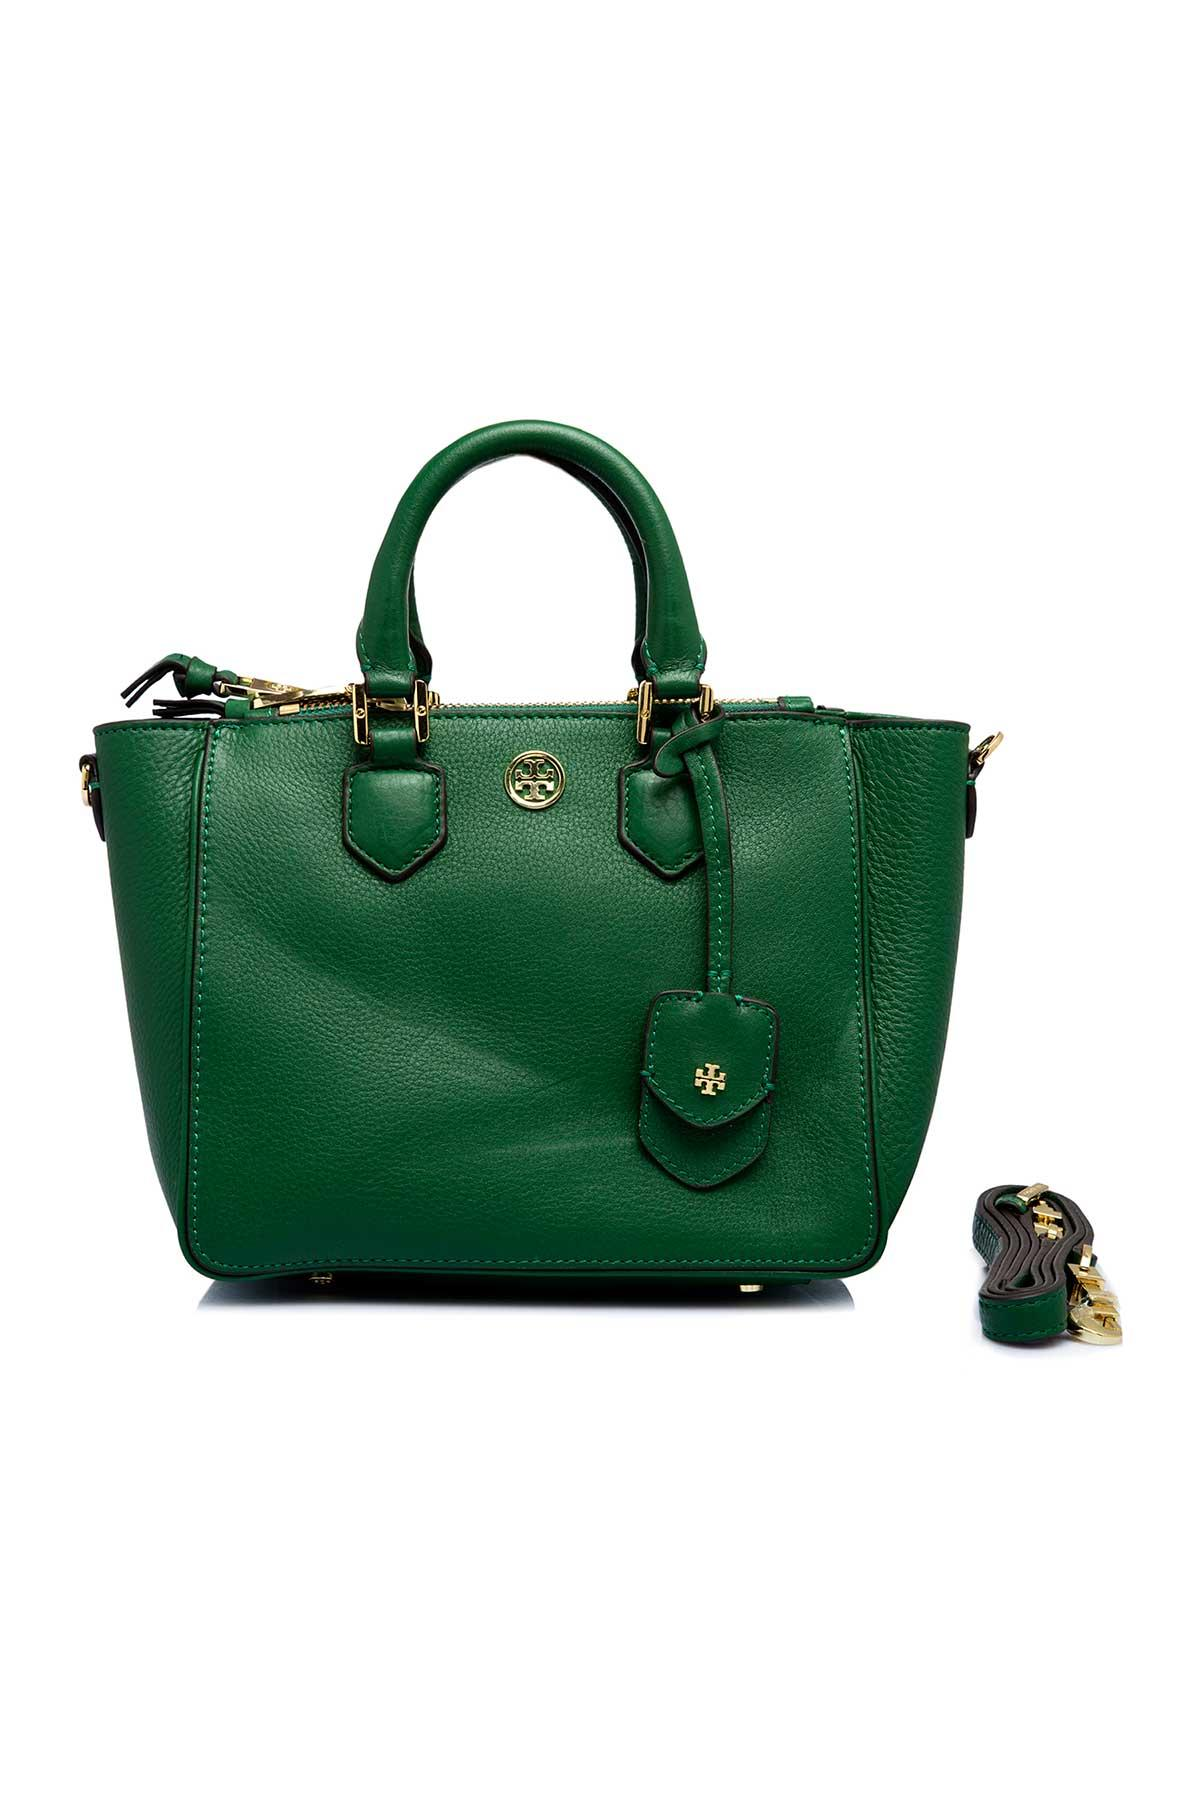 369d79cc04f Green Mini Square Tote by Tory Burch for rent online